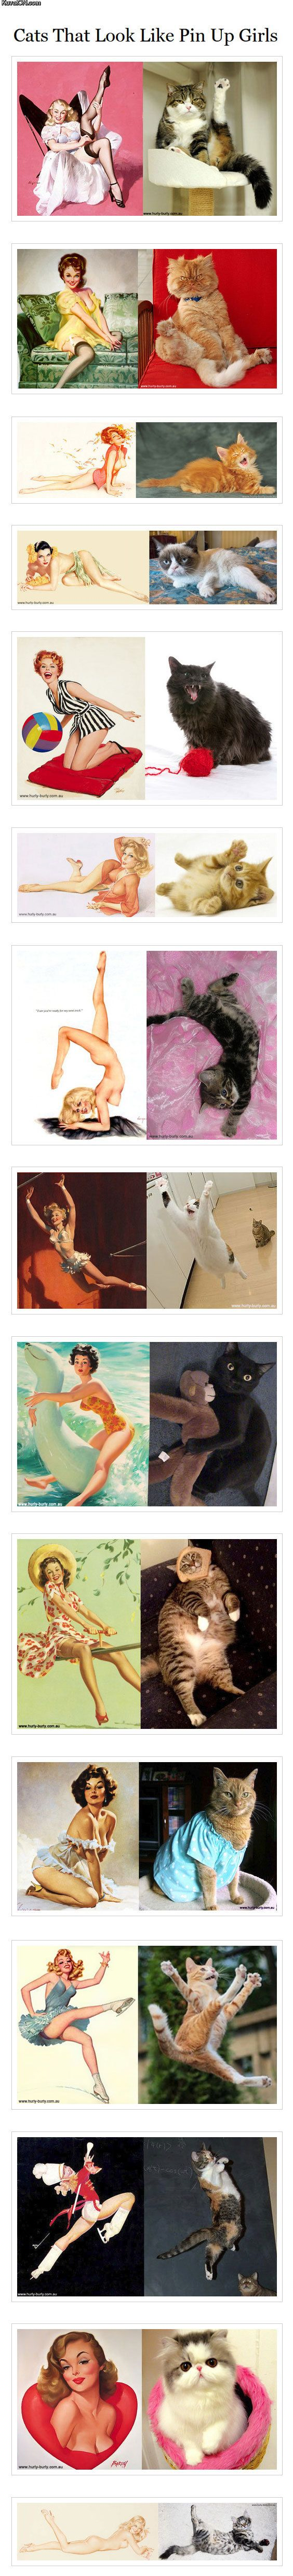 Cats and Pin Up Girls. The Pin-up culture is really obnoxious to